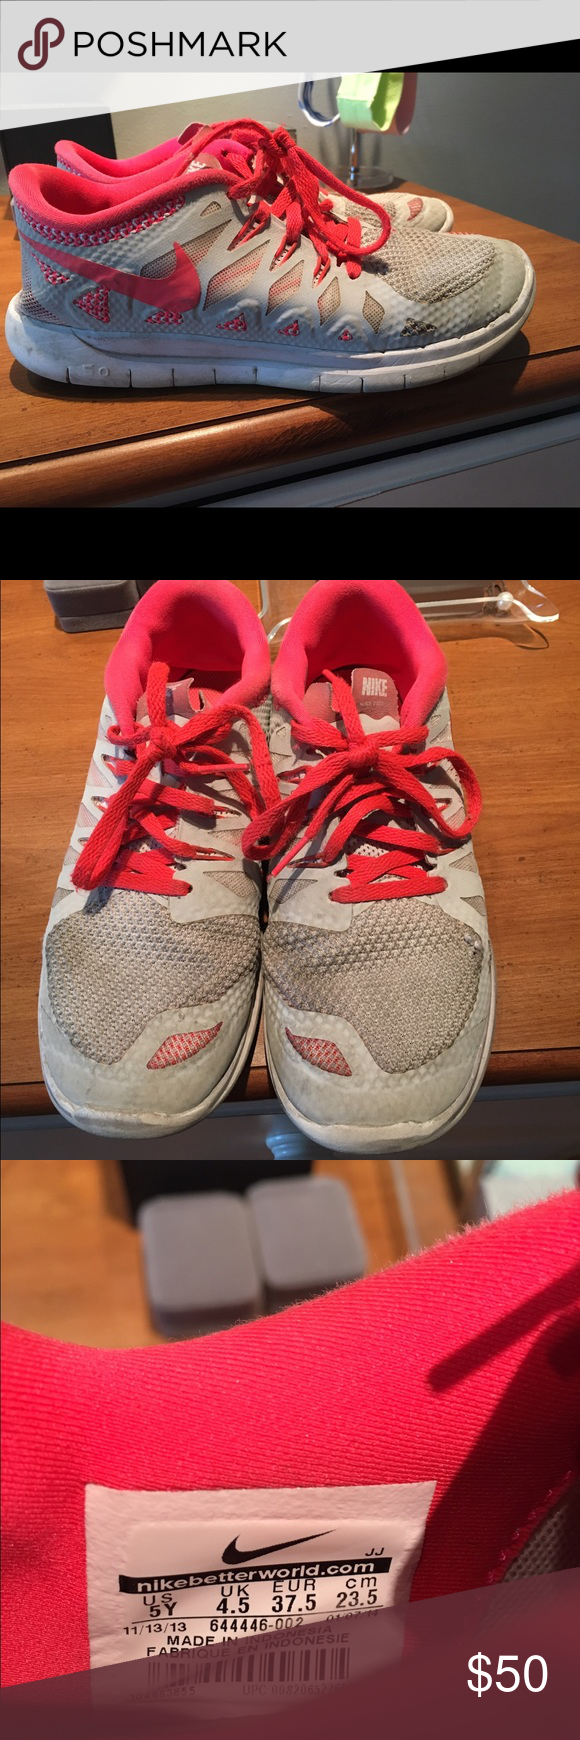 ... Force 1 Unisex Youth pre order  004f0 8c525 Nike tennis shoes. Gently  used. Perfect condition. Comfortable tennis shoes. d47fc24eadd9